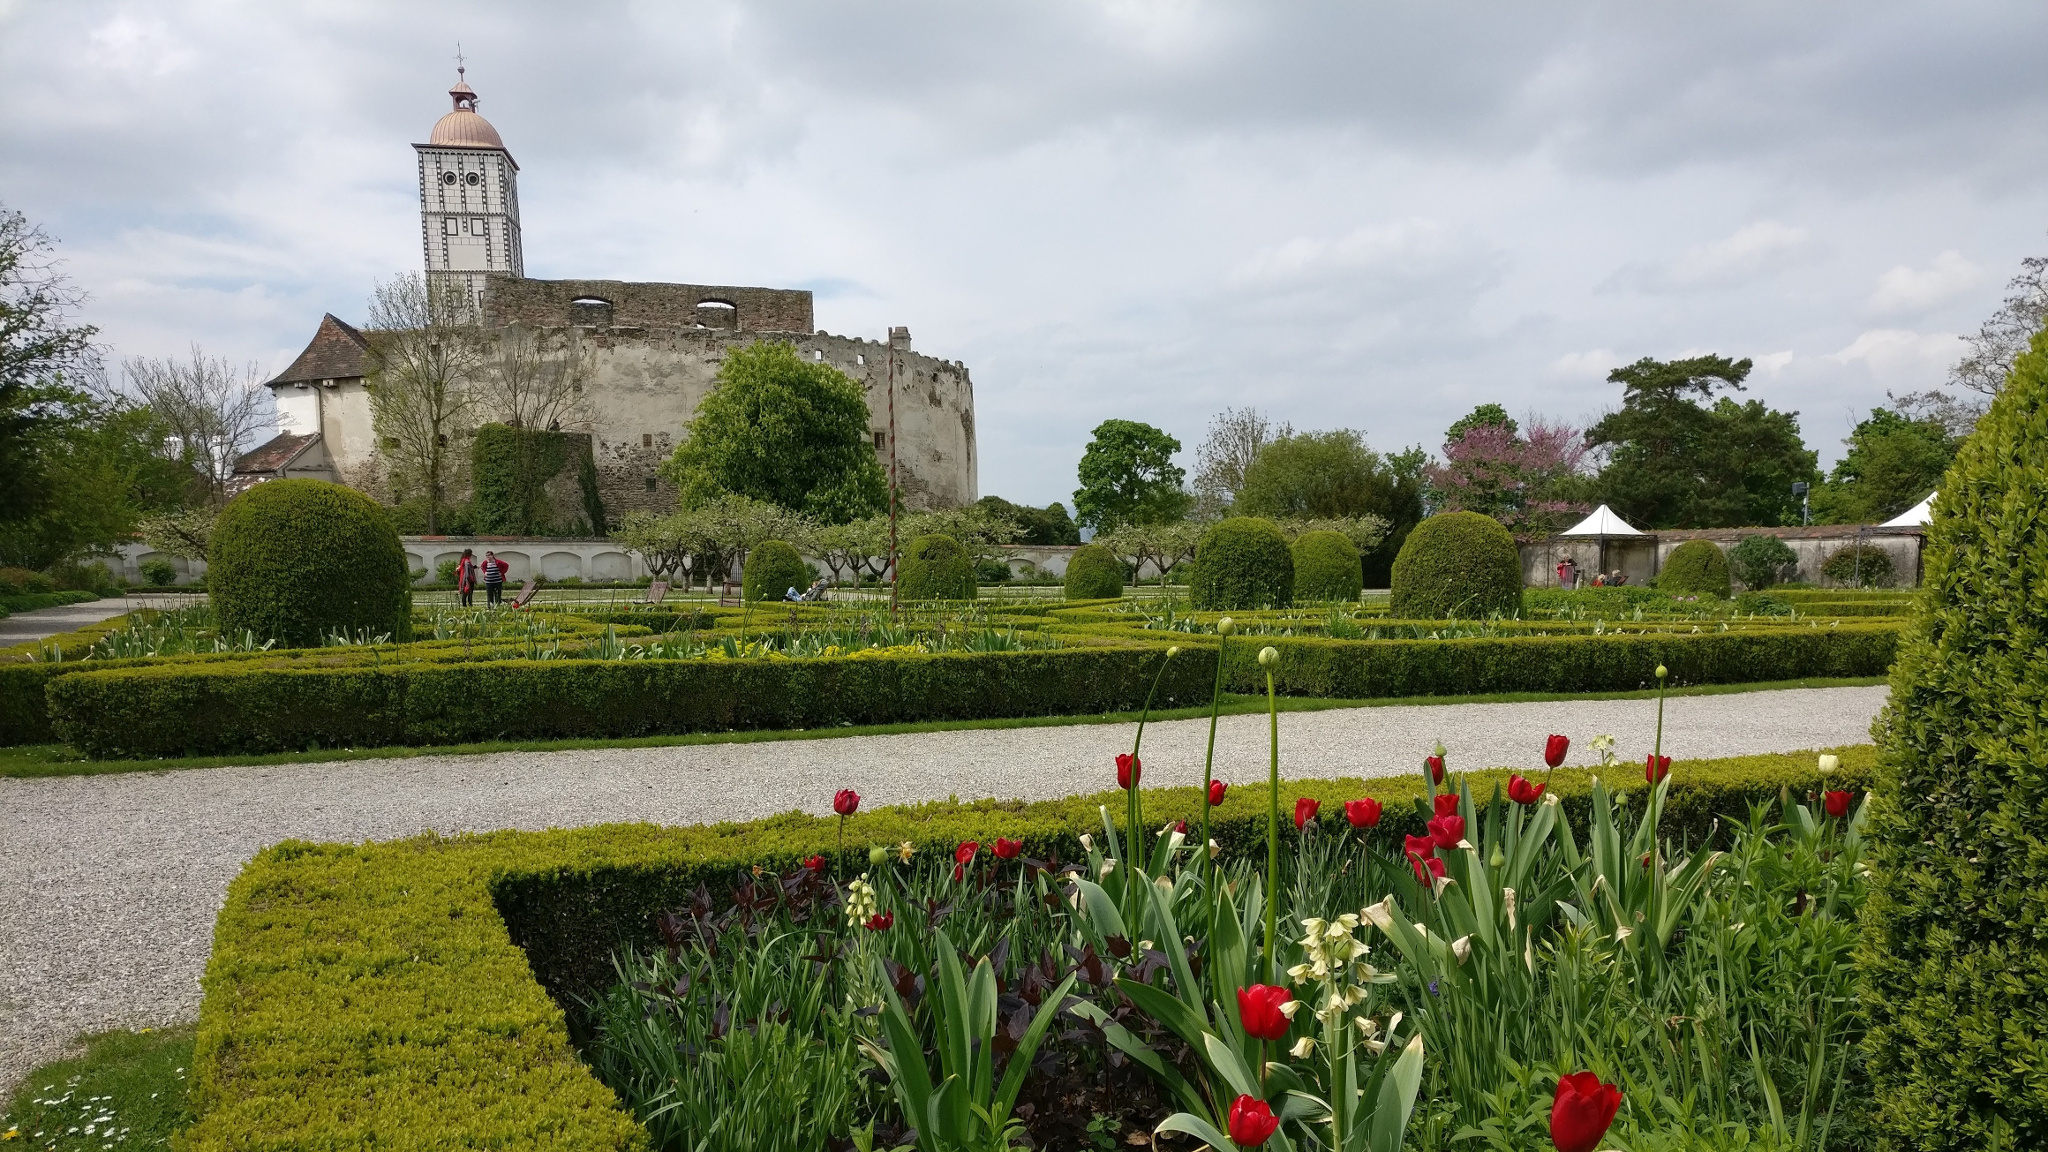 Schallaburg Castle and garden